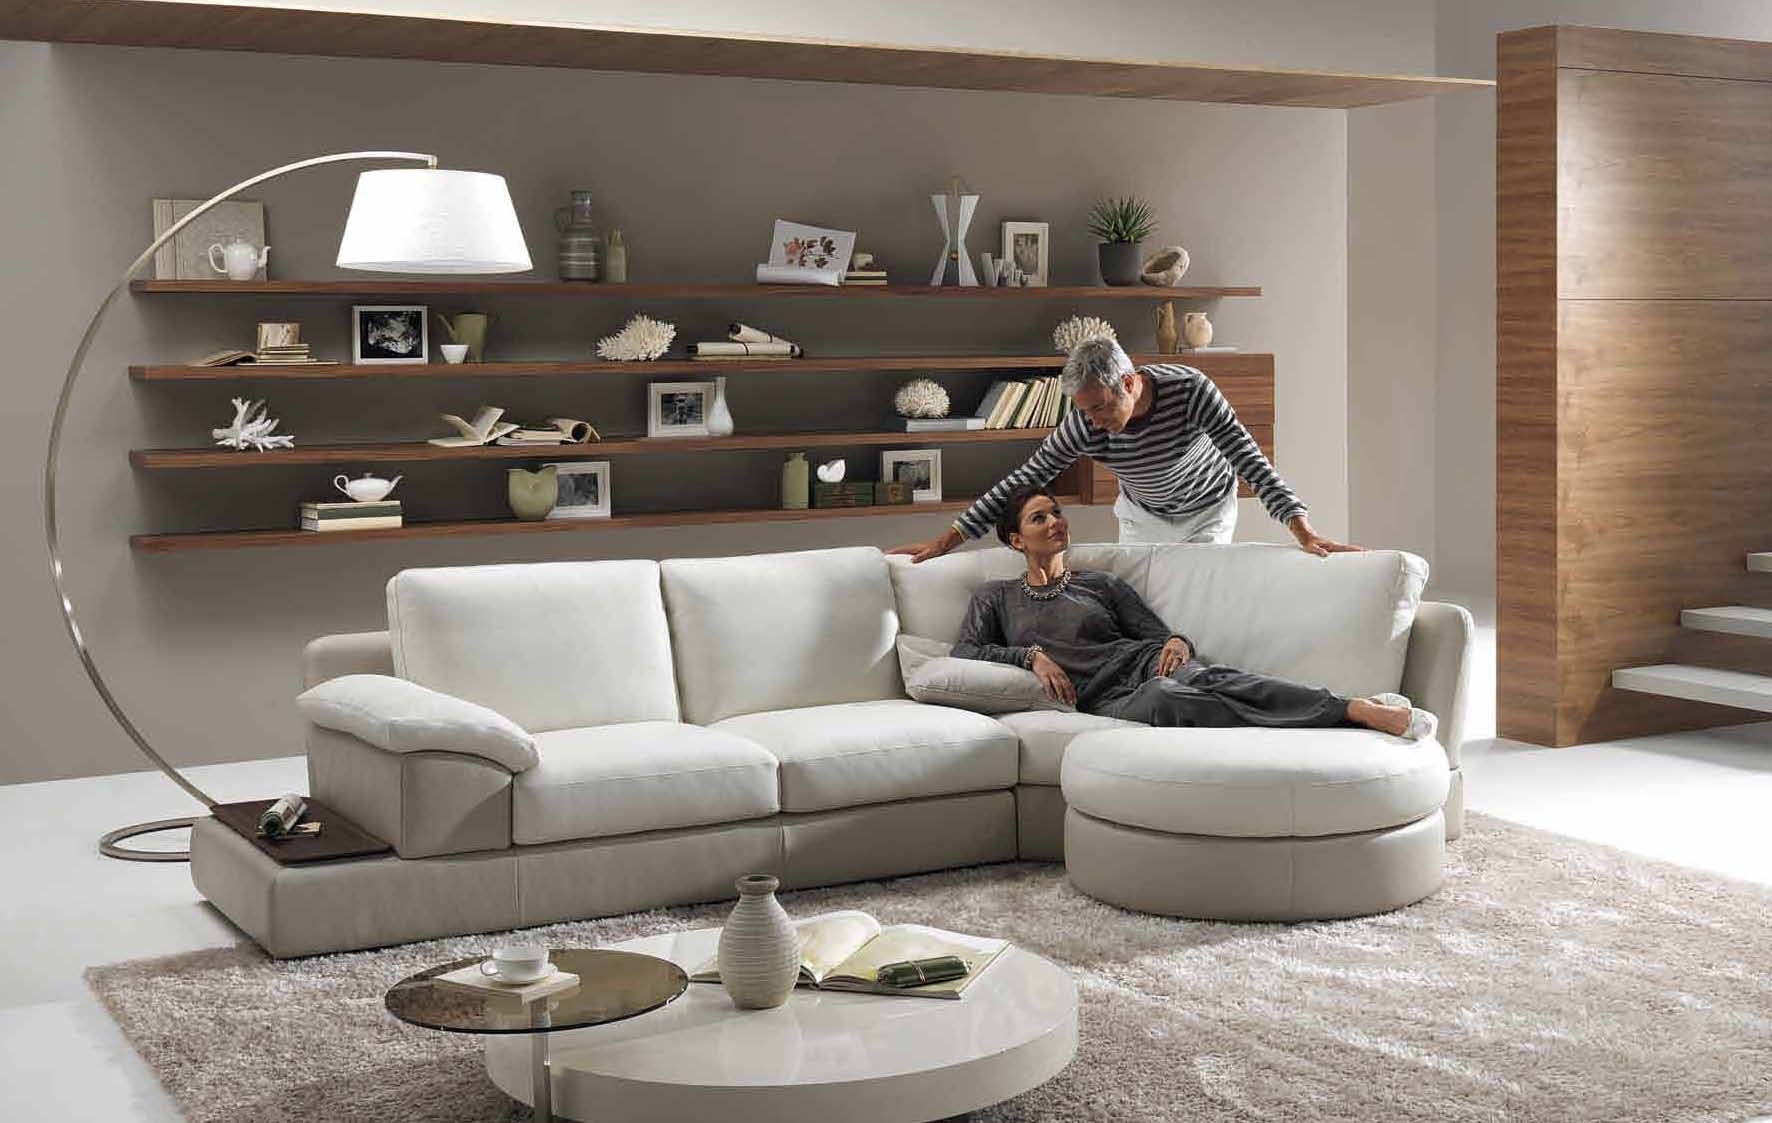 Home & Garden: Living Room Styles 2010 by Natuzzi: Interior Design Ideas